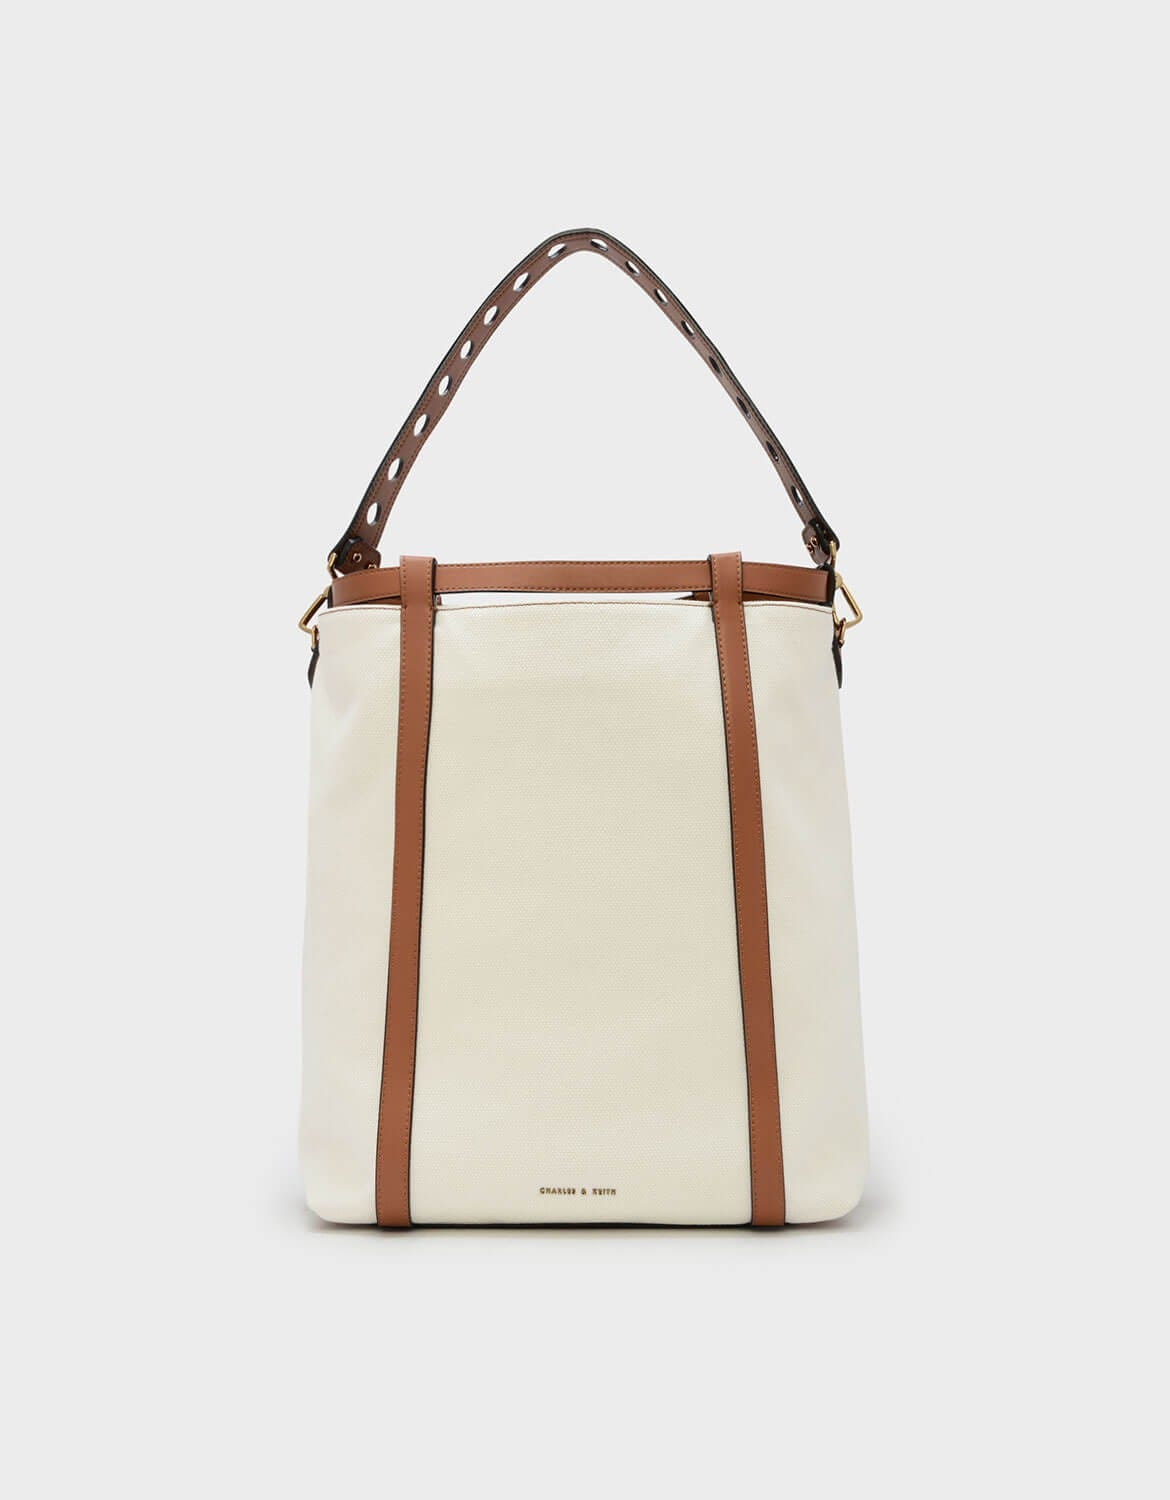 17 Non-Bulky Totes Perfect For Carrying Your Laptop In 52a744196a1ec